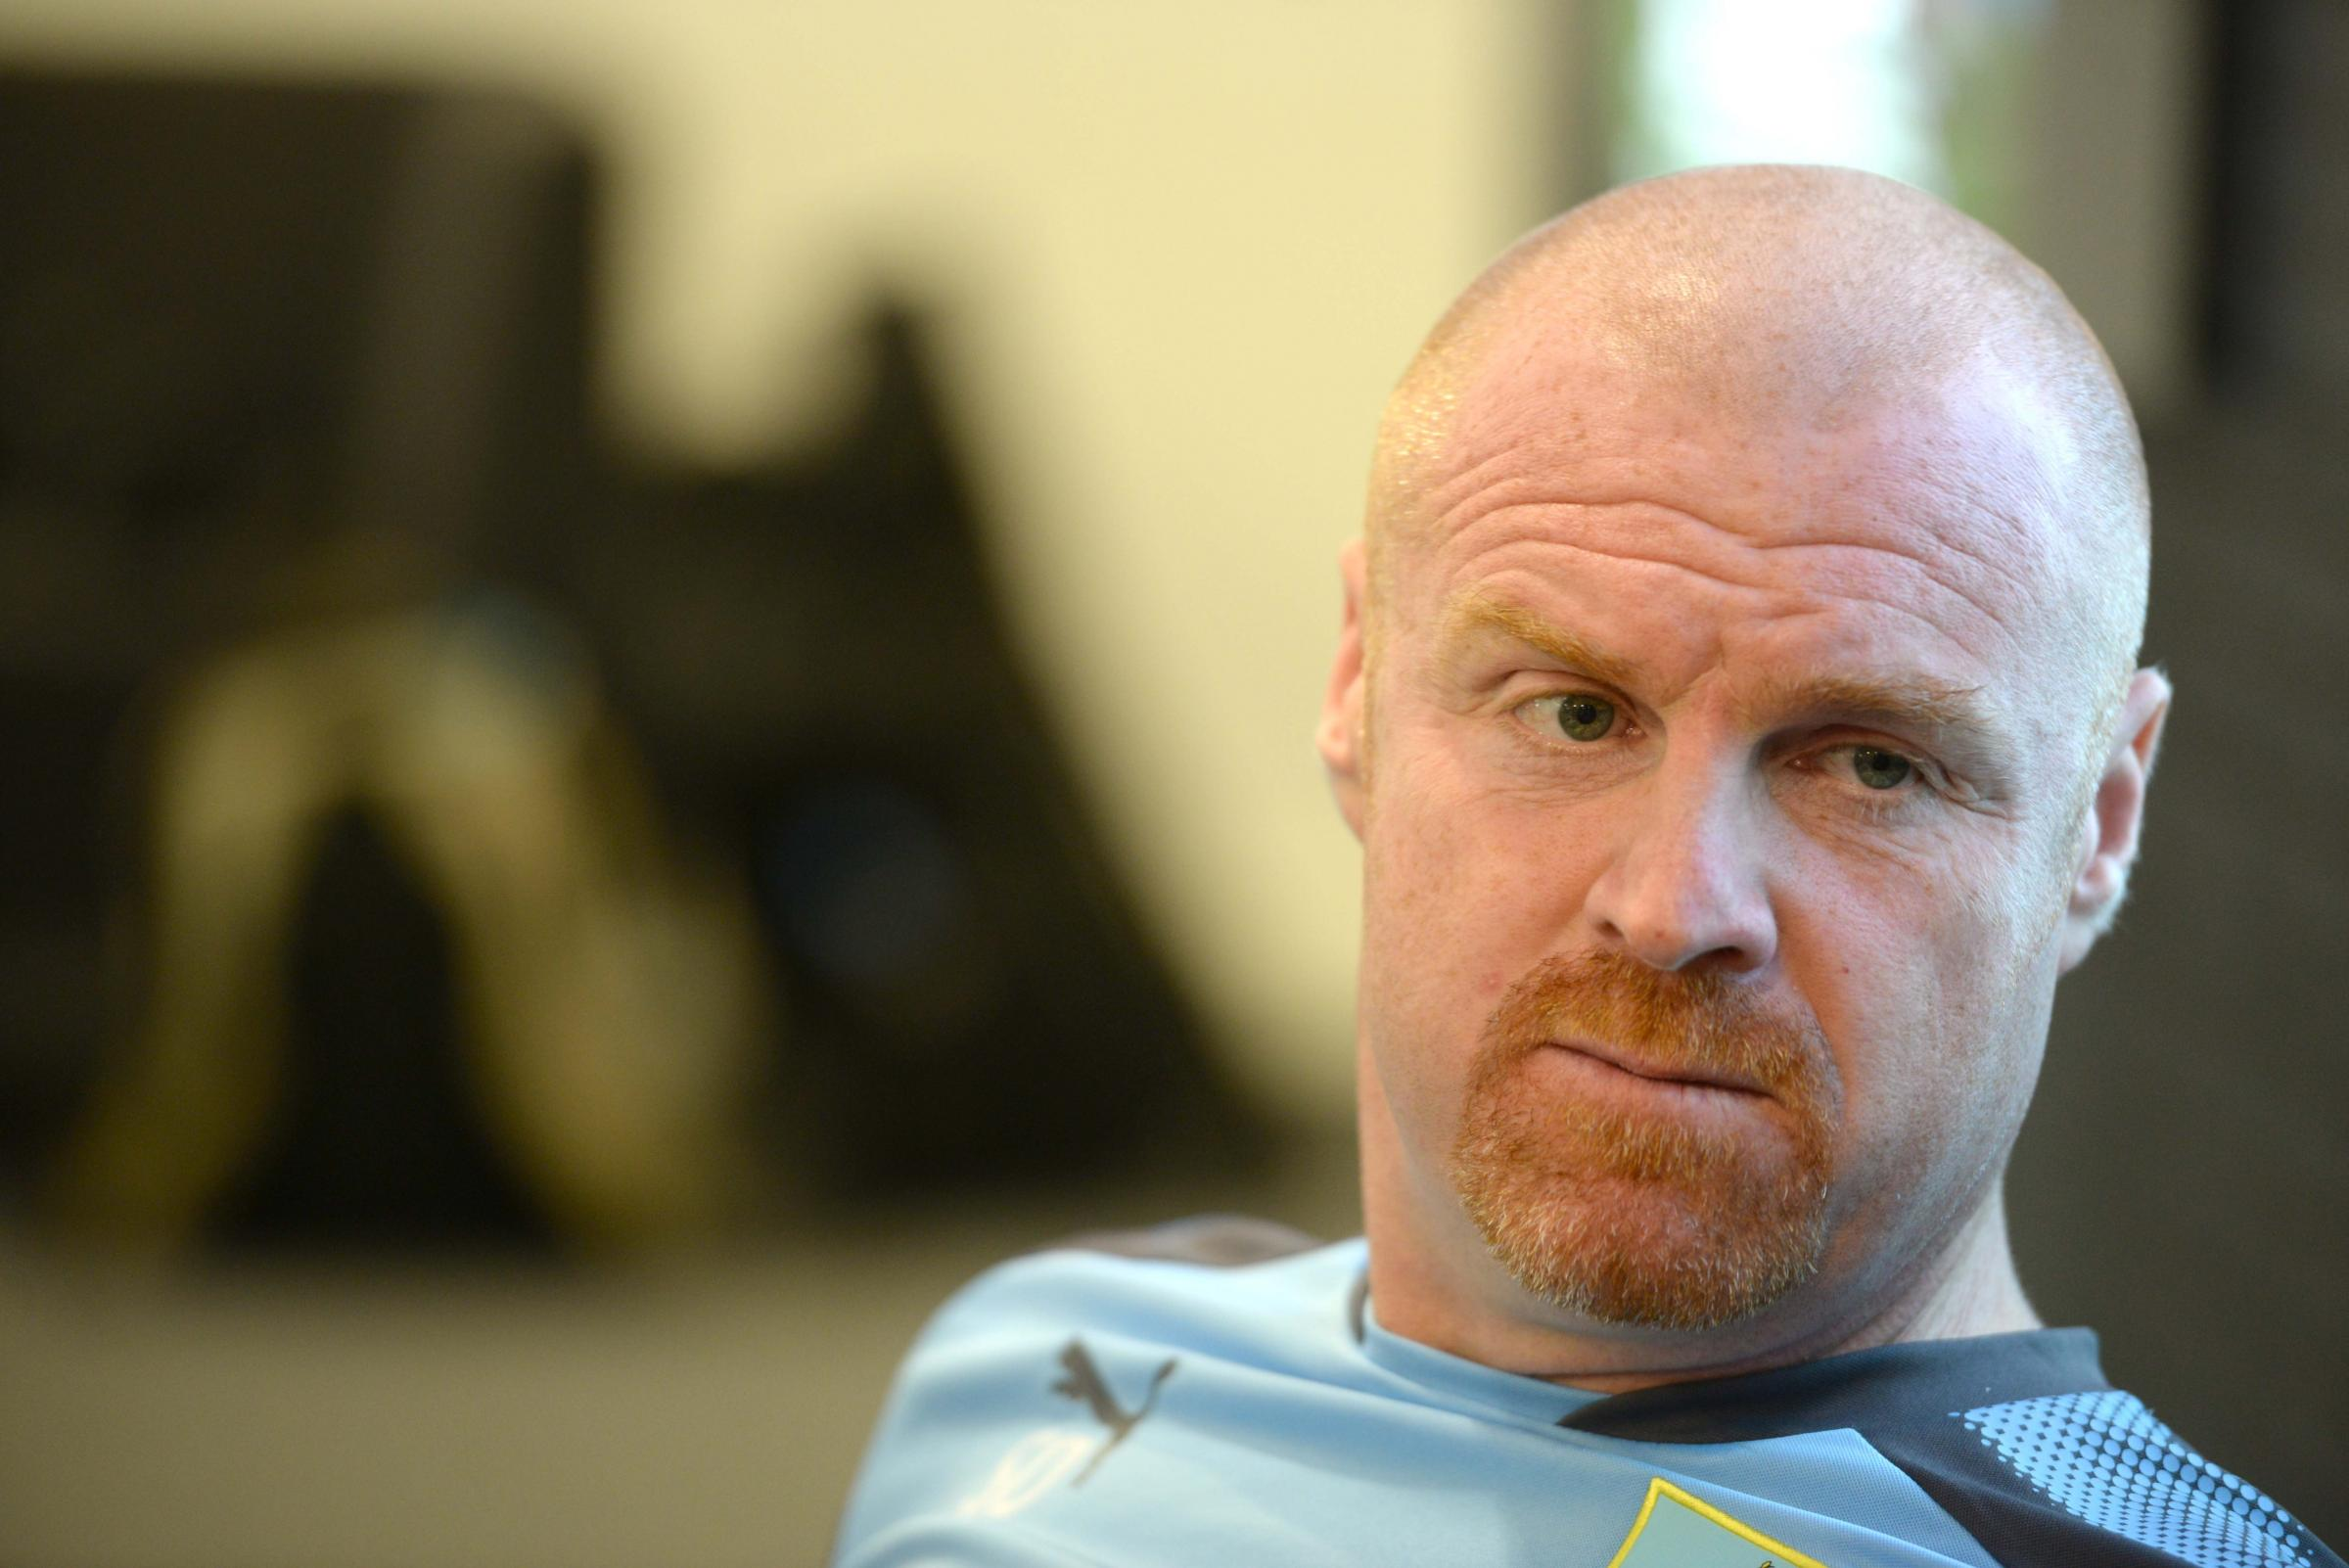 SHUT THE WINDOW: Sean Dyche has backed plans to close the transfer window before the start of the season